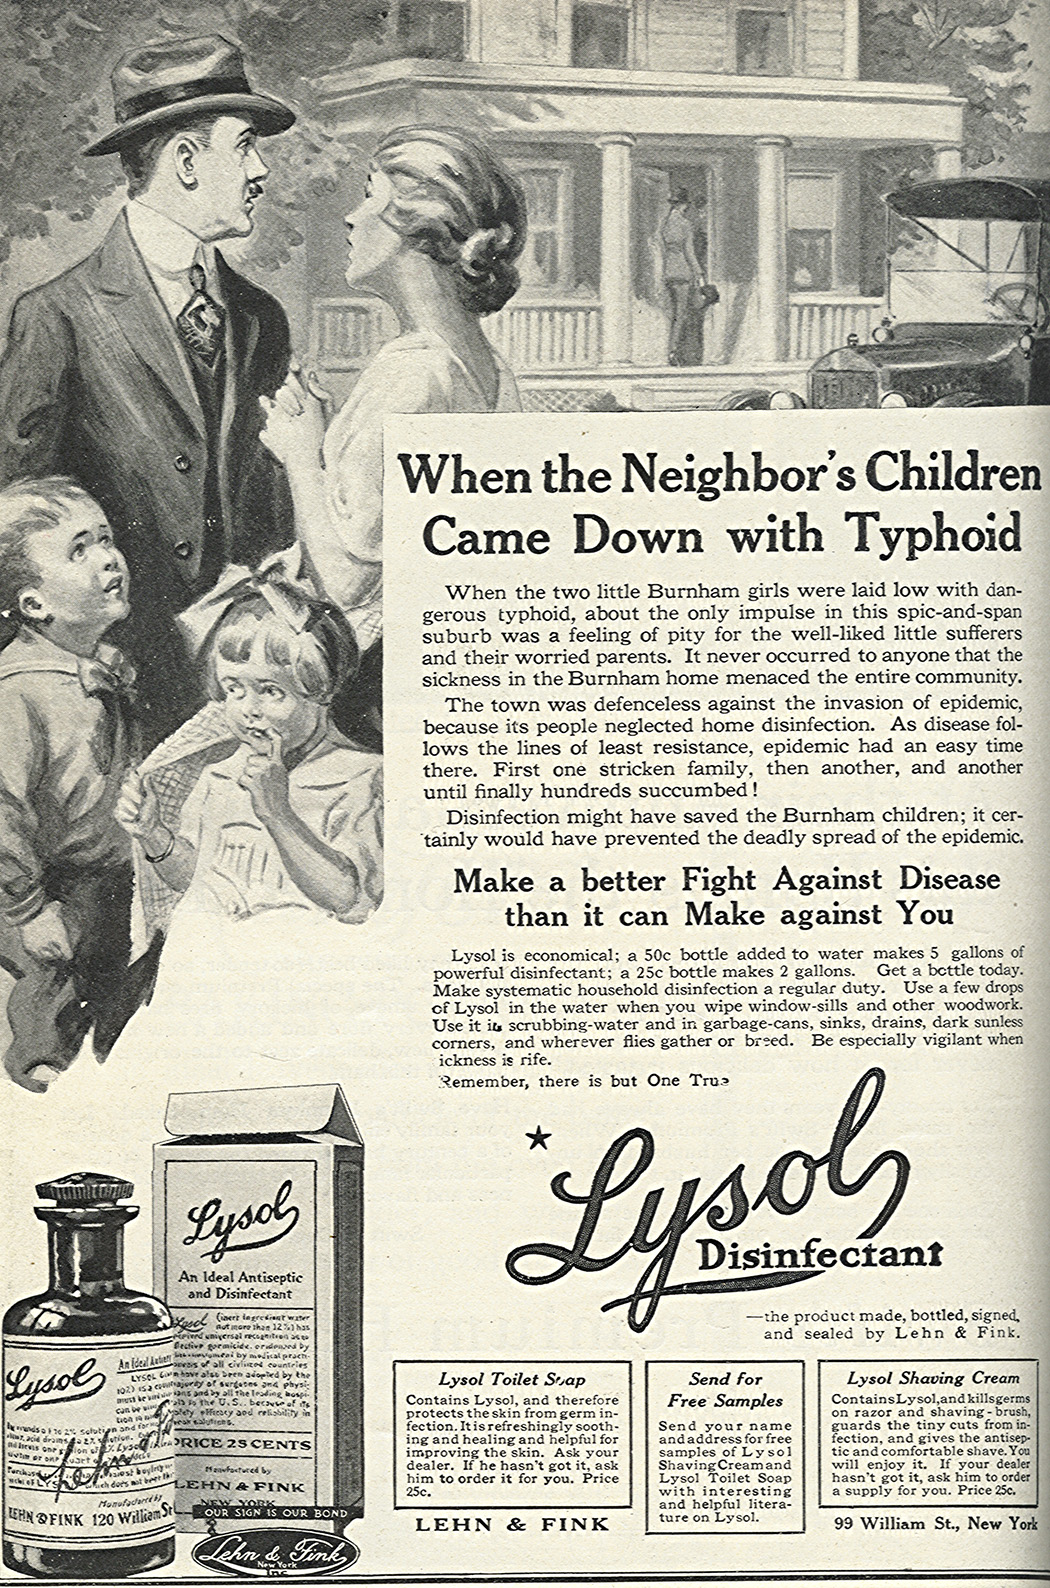 Lysol Disinfectant advertisement from the March 1918 issue of Good Housekeeping magazine